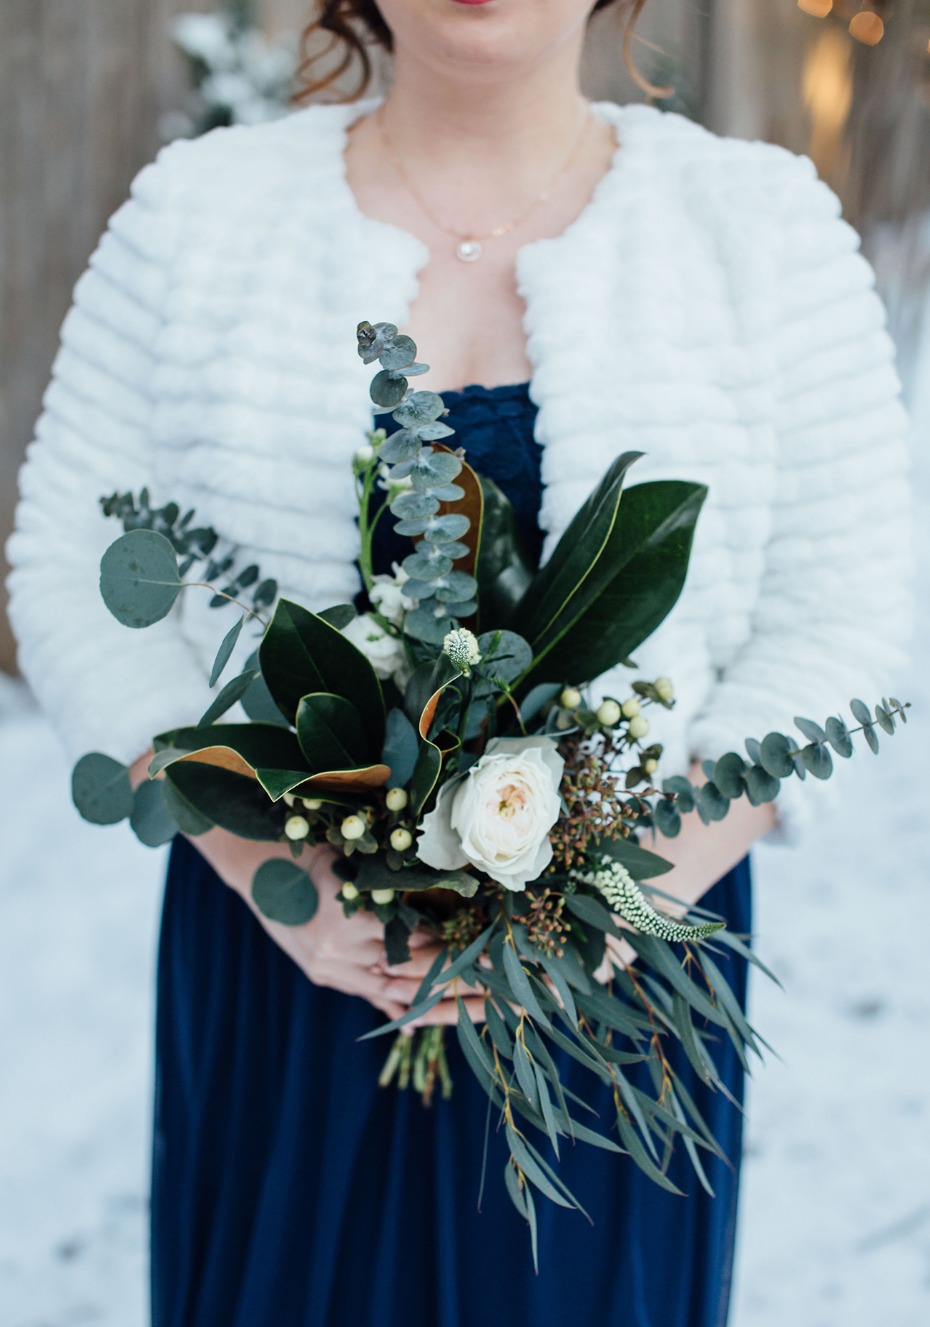 Bridesmaid bouquet for a winter wedding